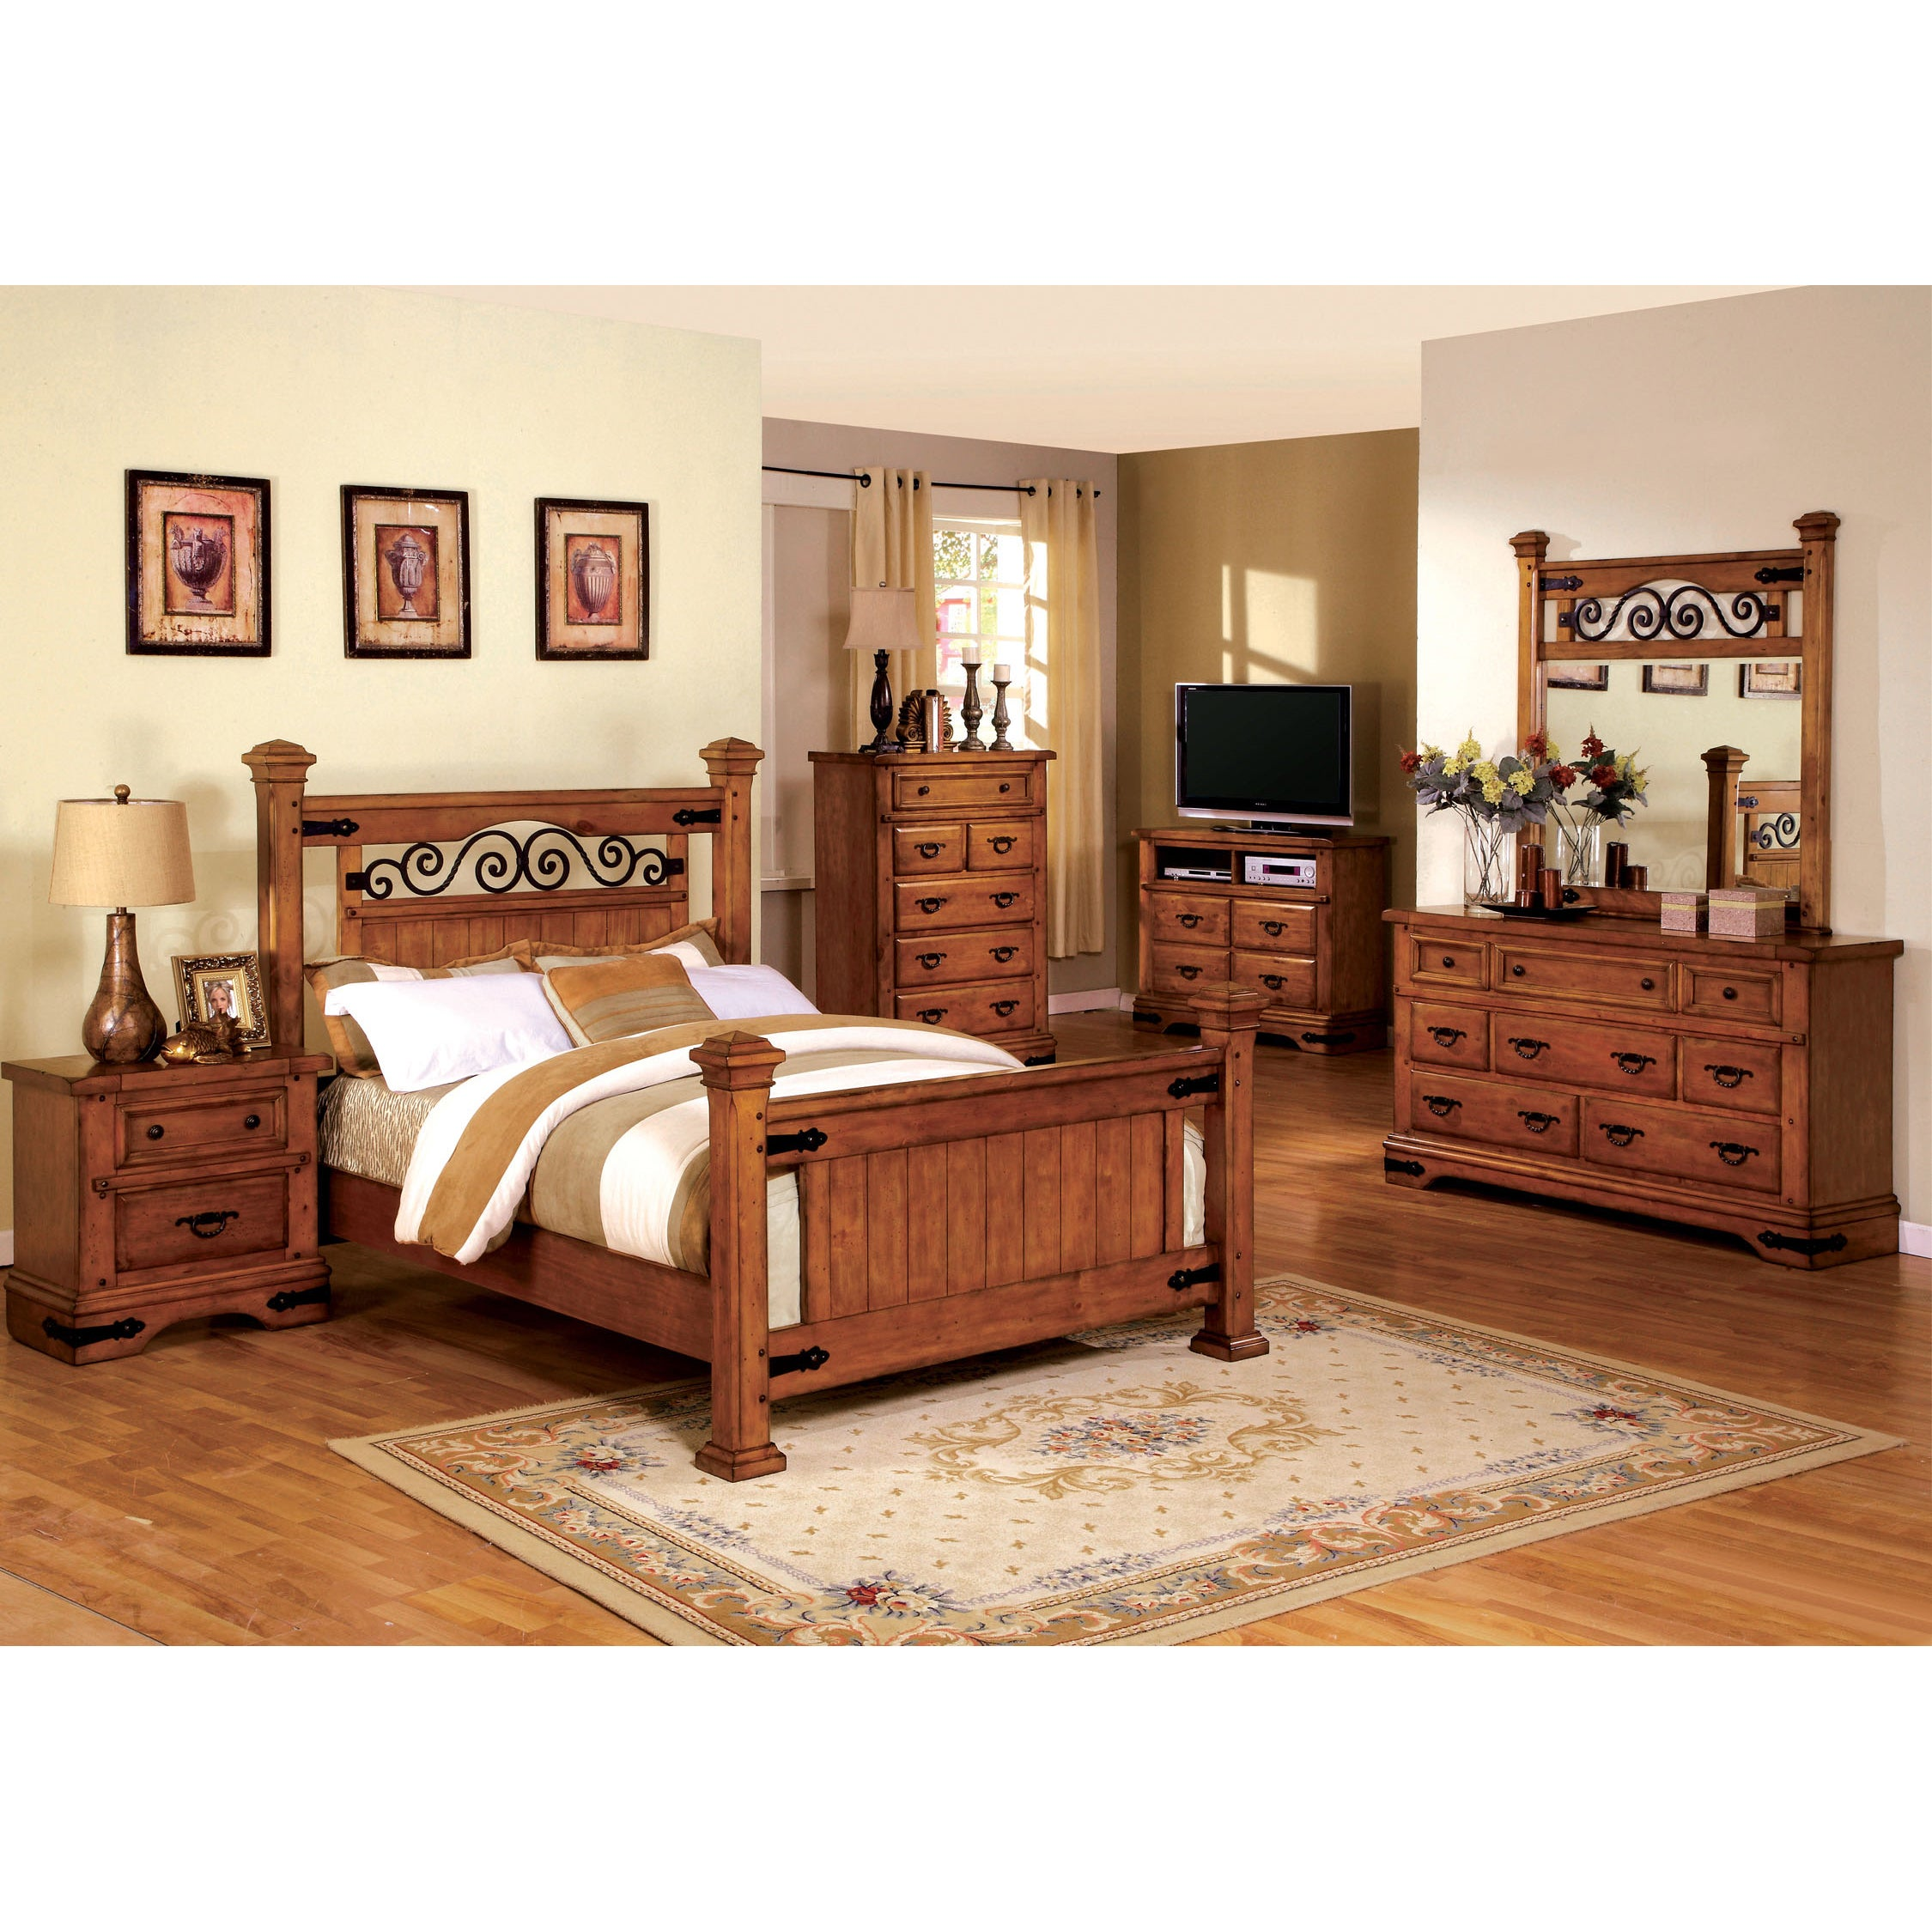 Furniture of America 4-piece Country Style American Oak Bedroom Set